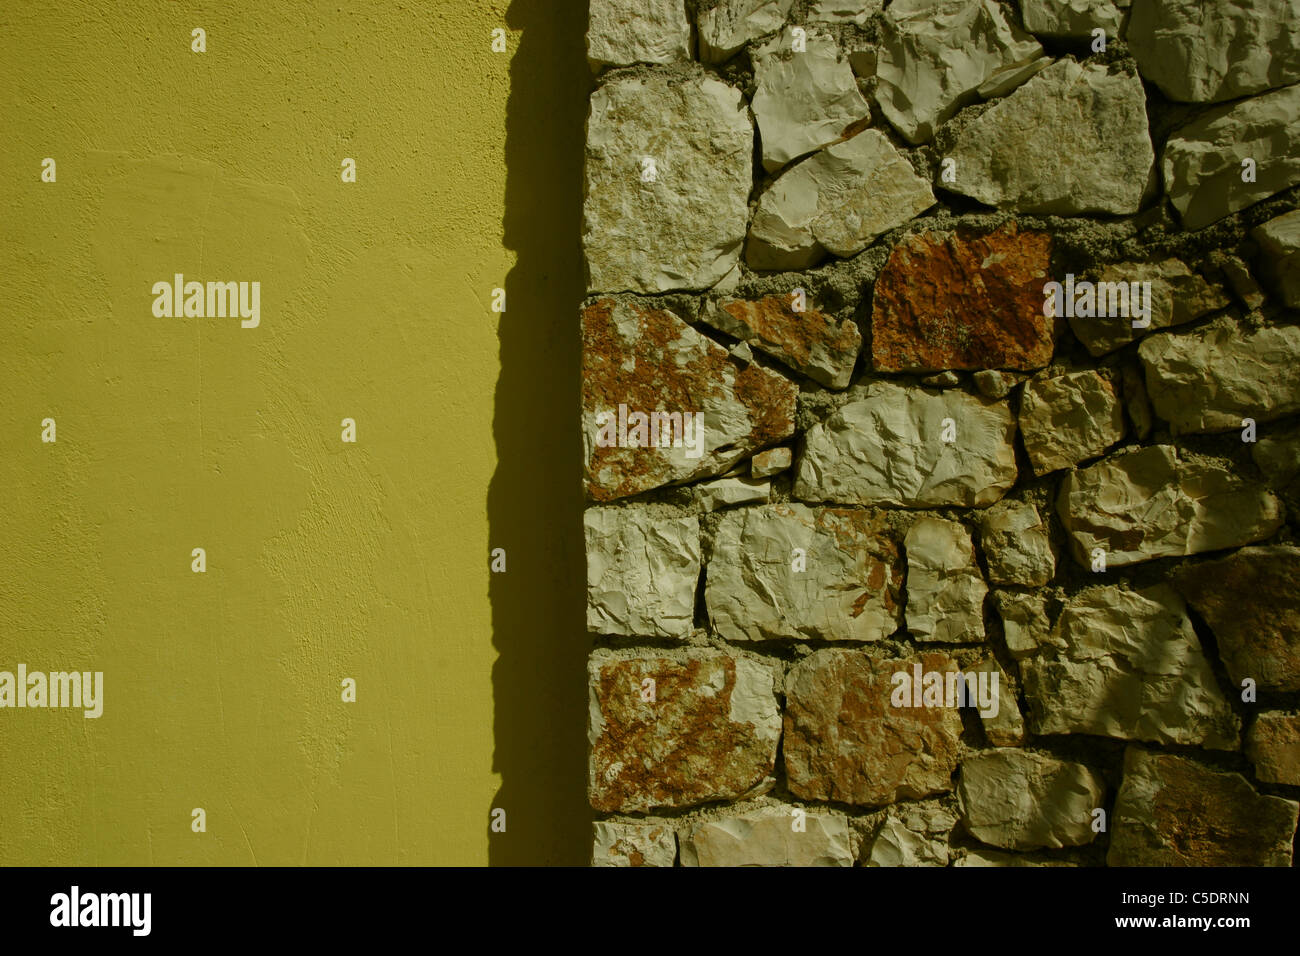 Cement Render Wall Stock Photos & Cement Render Wall Stock Images ...